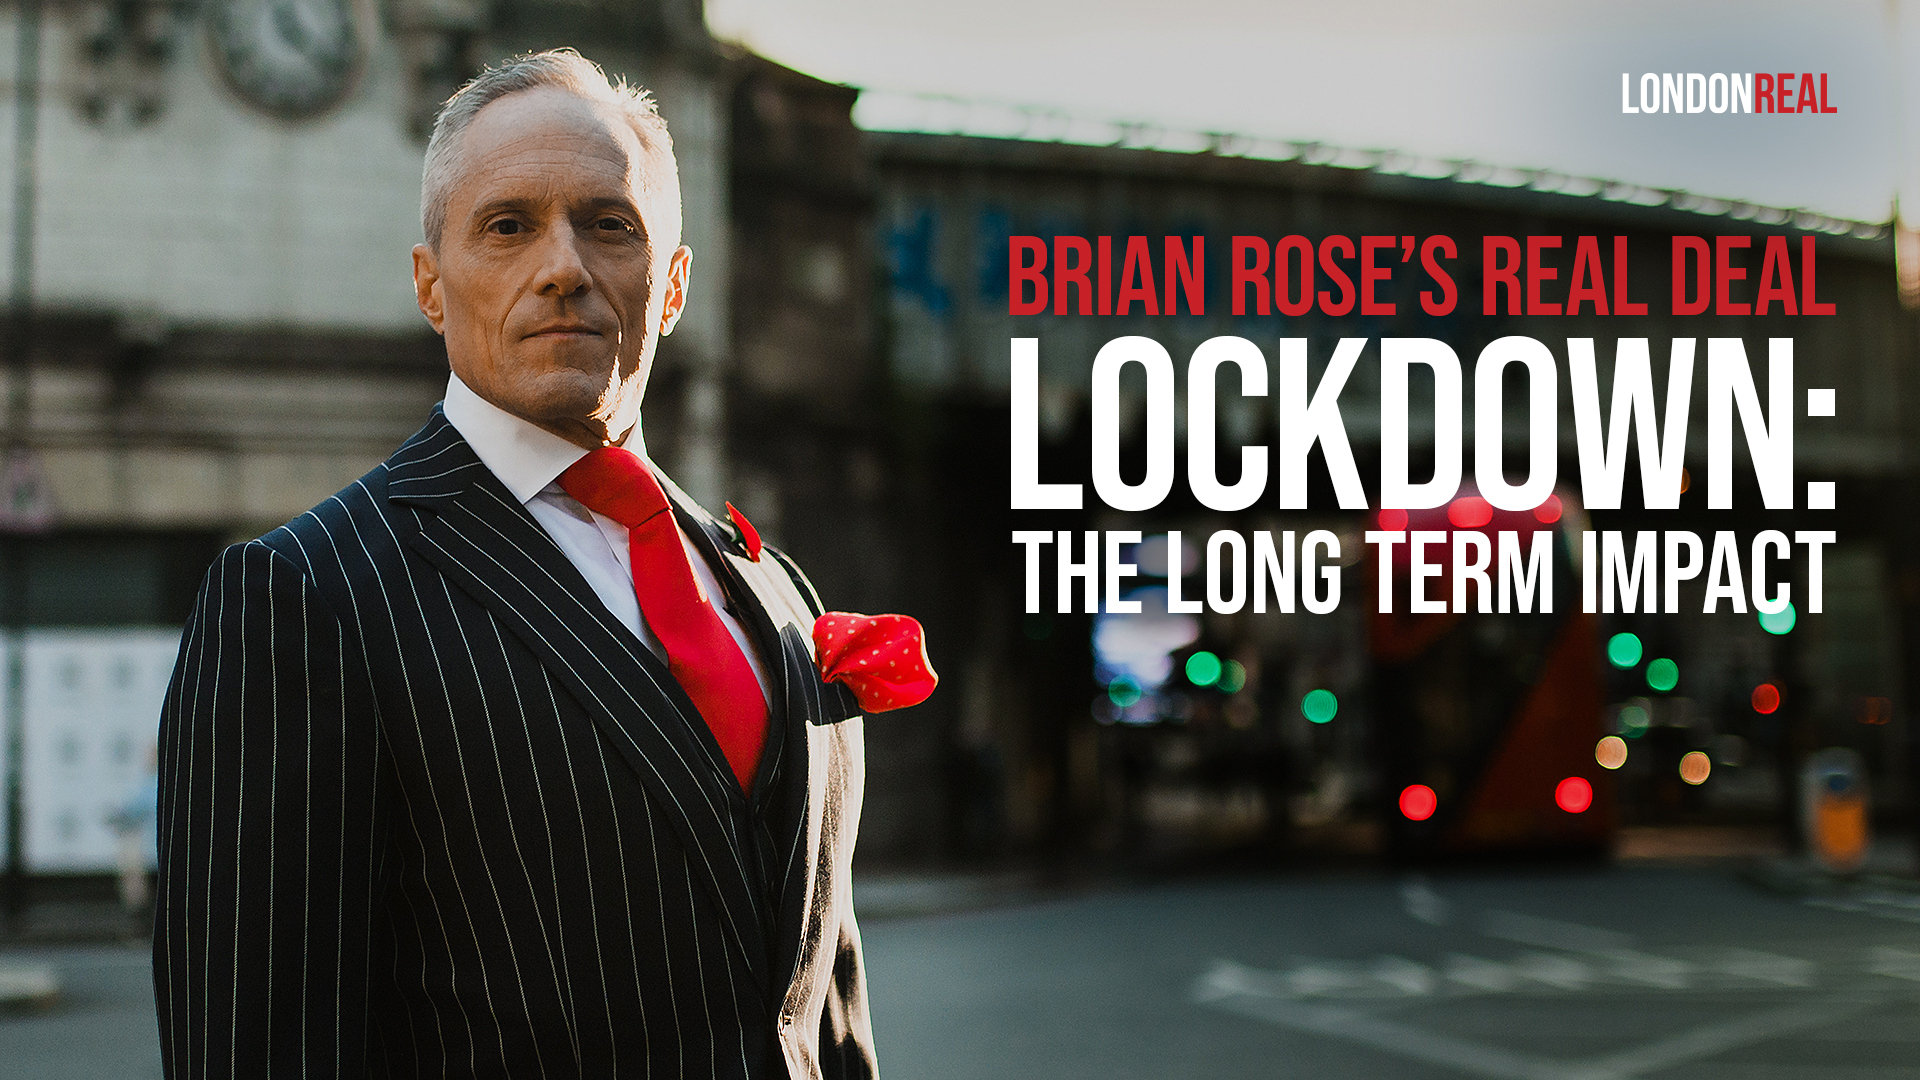 Brian Rose's Real Deal - Our Politicians Have Failed Us: The Devastating Effects Of The Long-term Lockdown